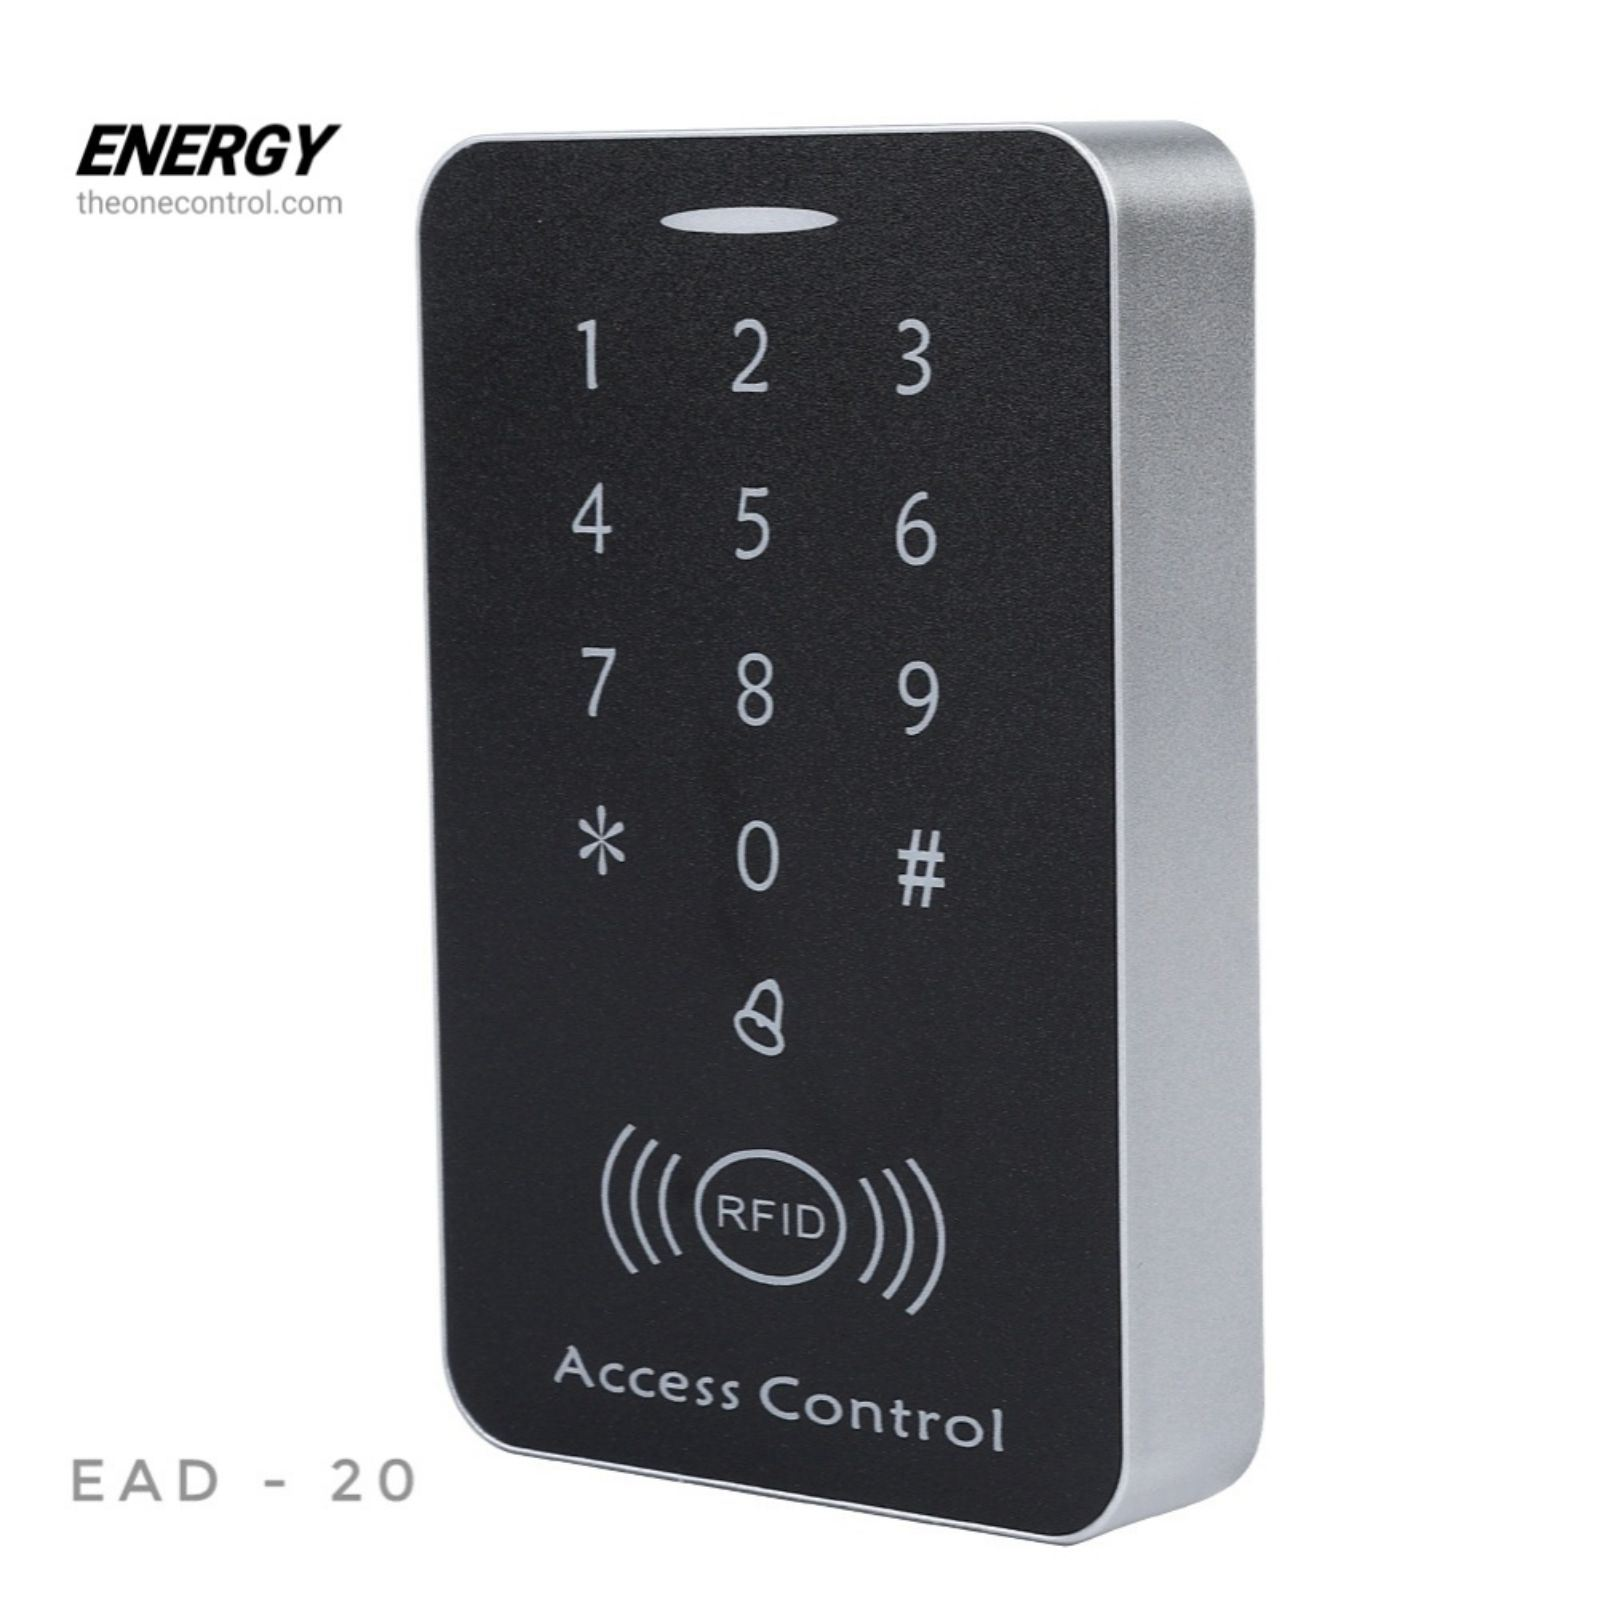 ENERGY FLAT BUTTON